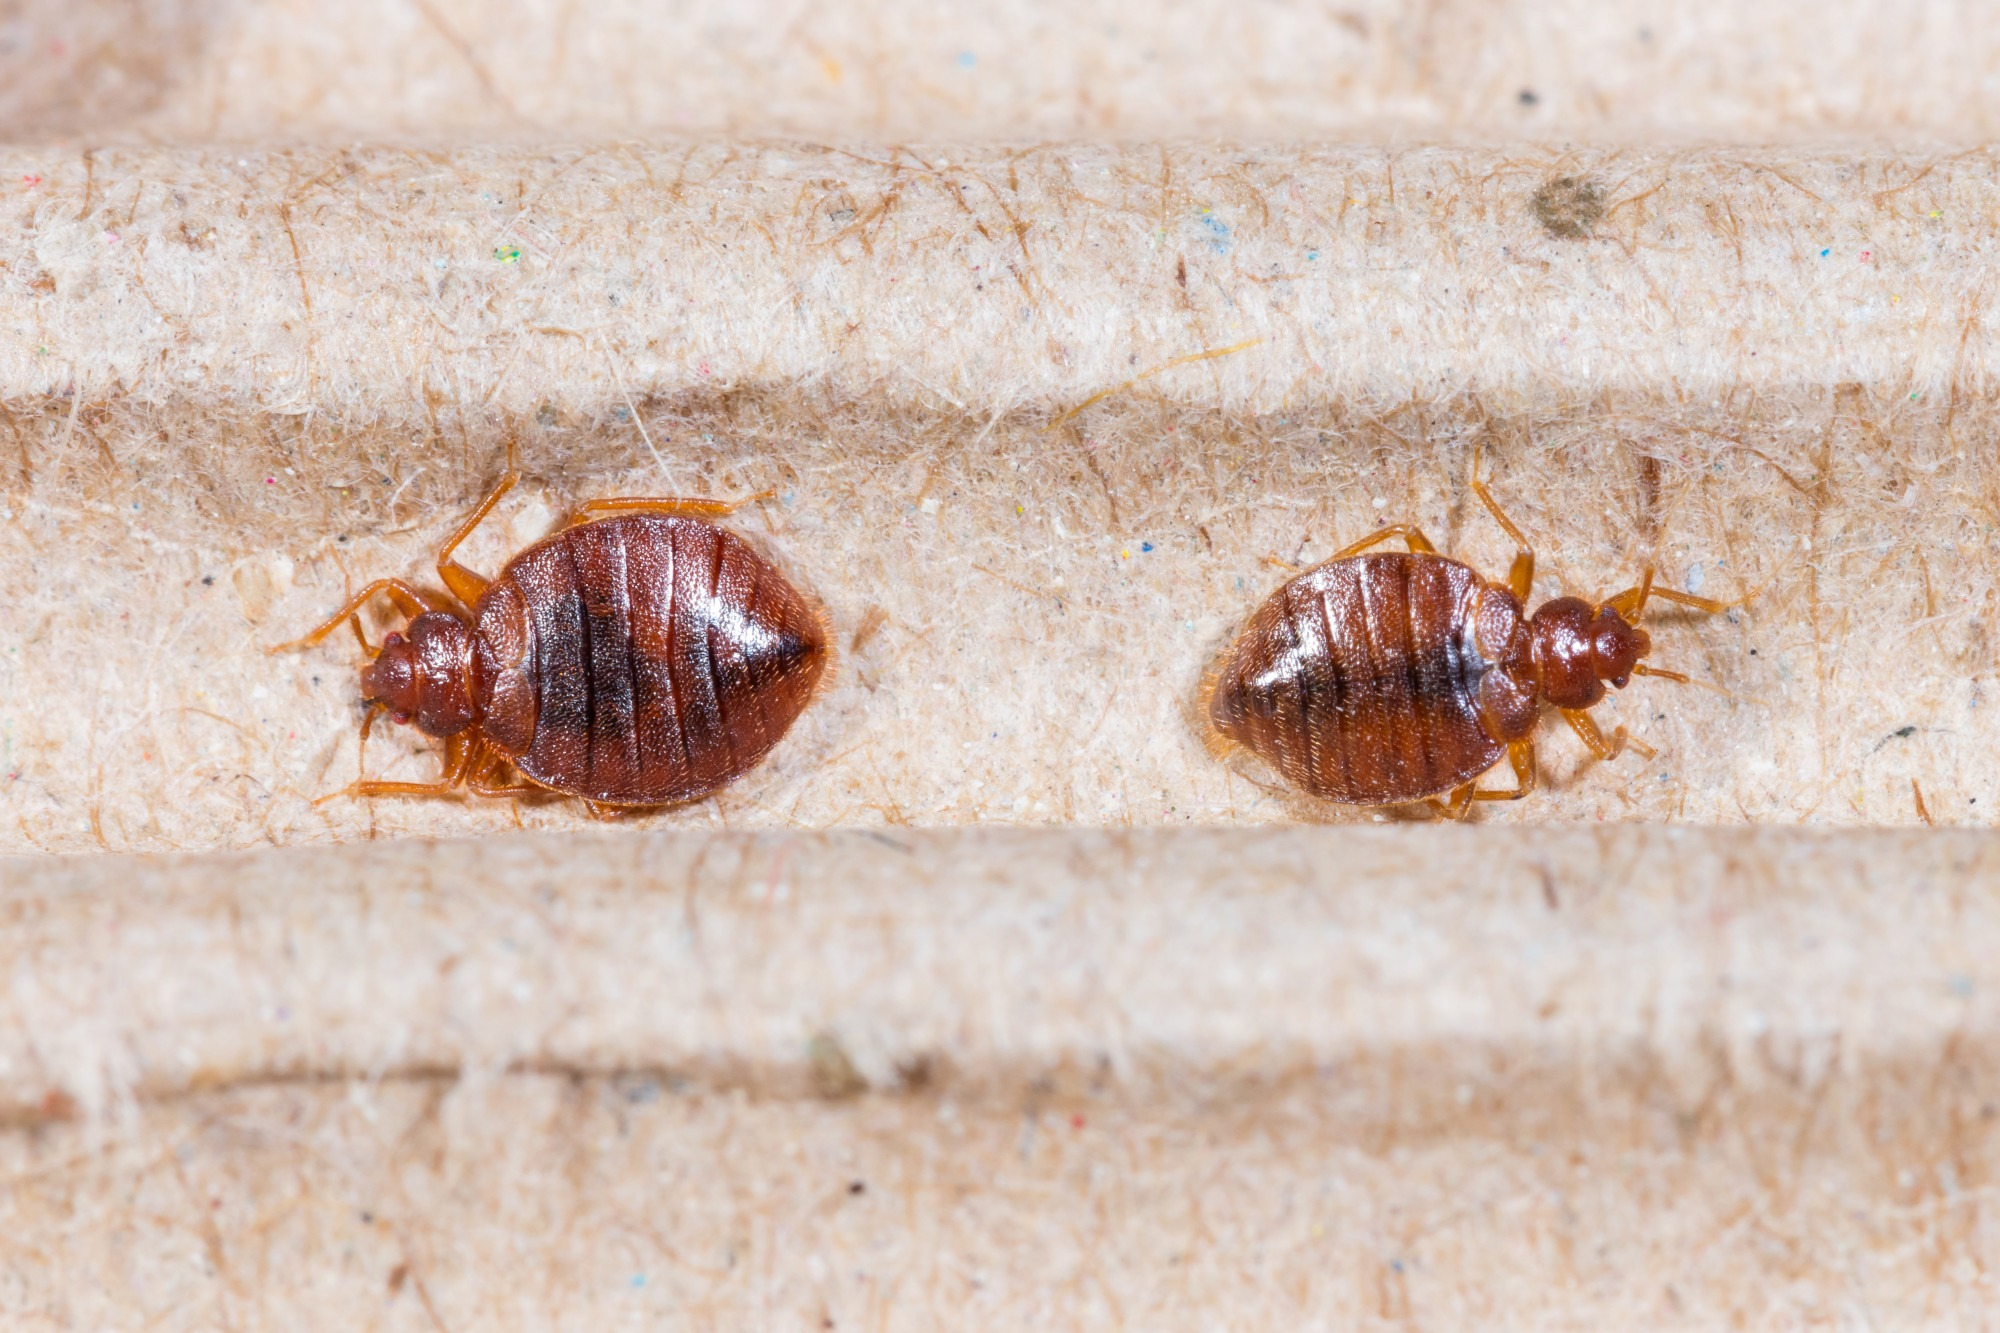 Bed Bug Control: The Warning Signs of Bed Bugs